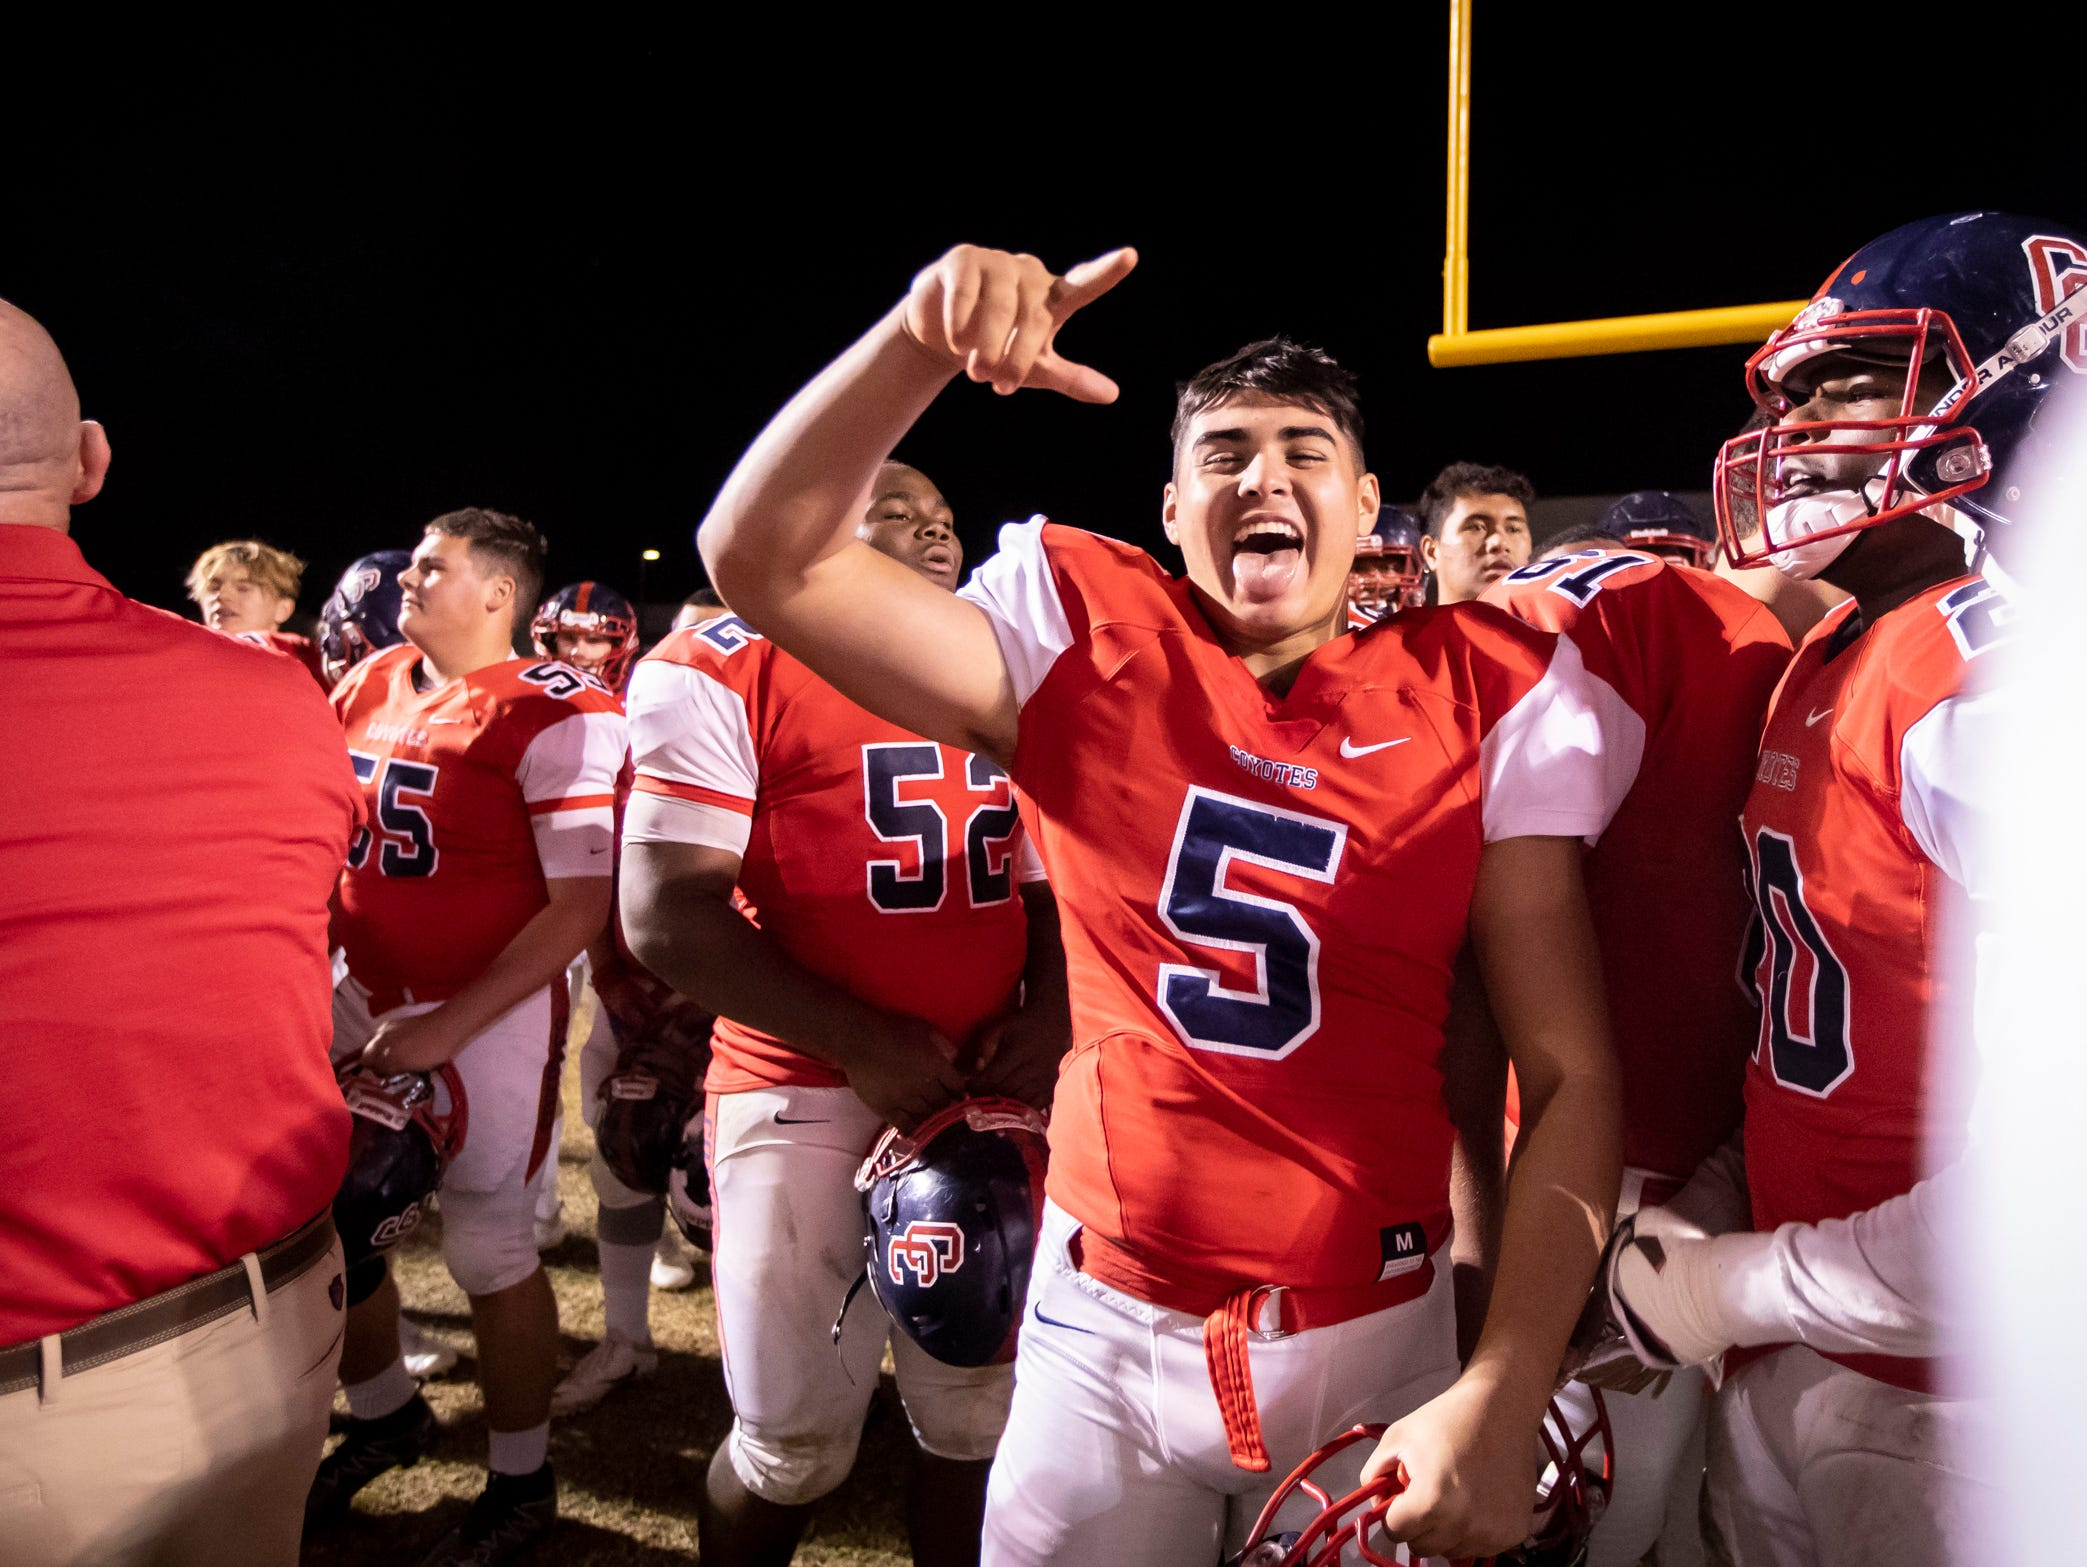 The Centennial Coyotes celebrate following their 48-13 win against the Higley Knights in a 5A semifinals at Willow Canyon High School on Friday, November 16, 2018 in Surprise, Arizona. #azhsfb